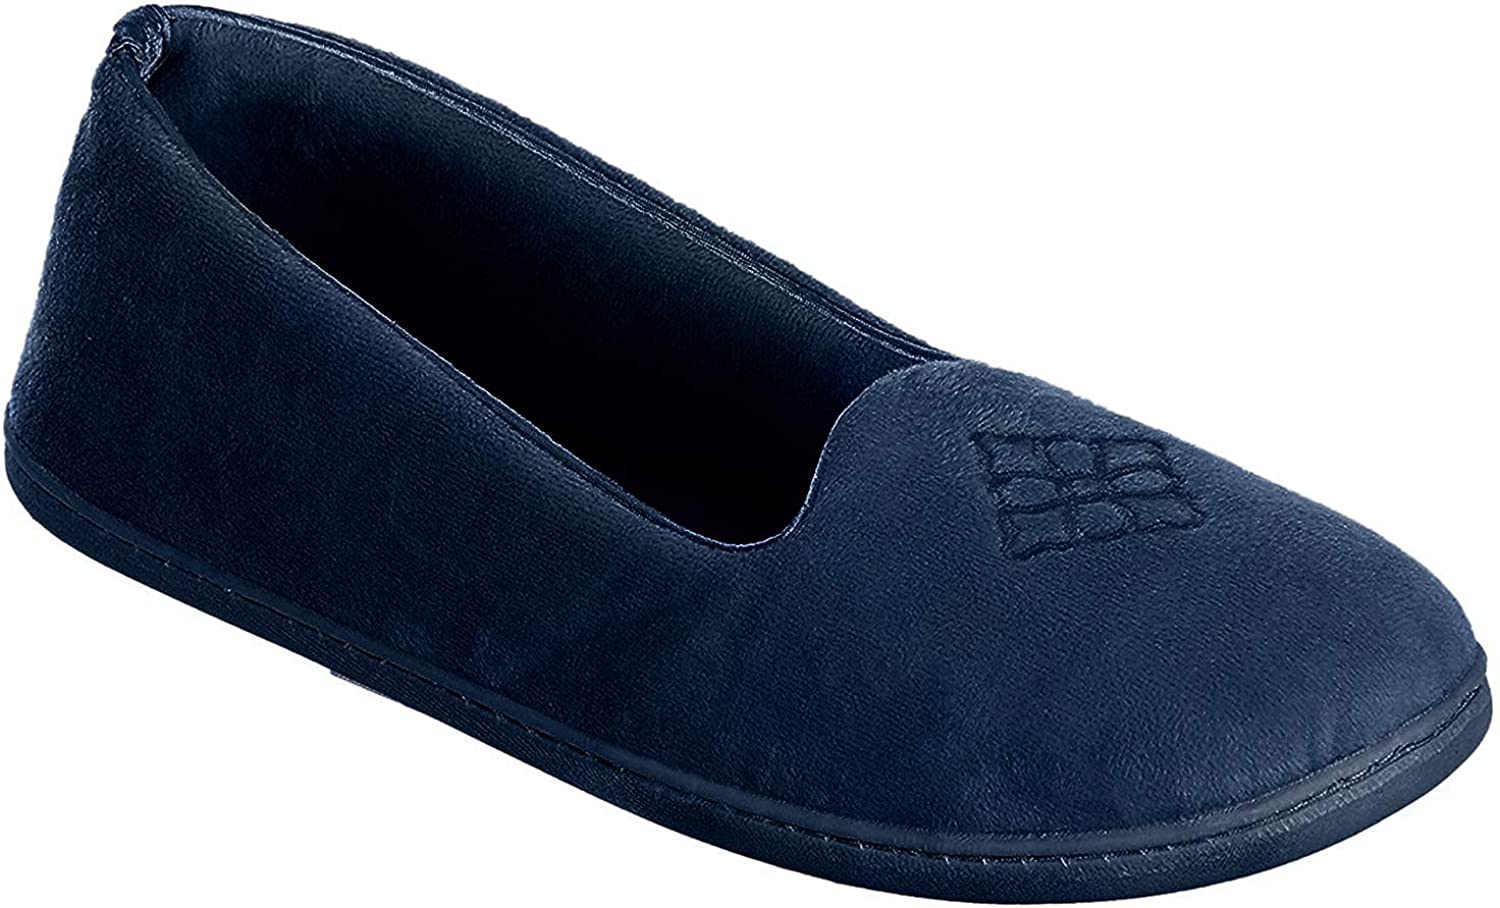 Dearfoams Women's Micro Velour Embroidered Closed Back Slippers, Peacoat, Medium 7-8